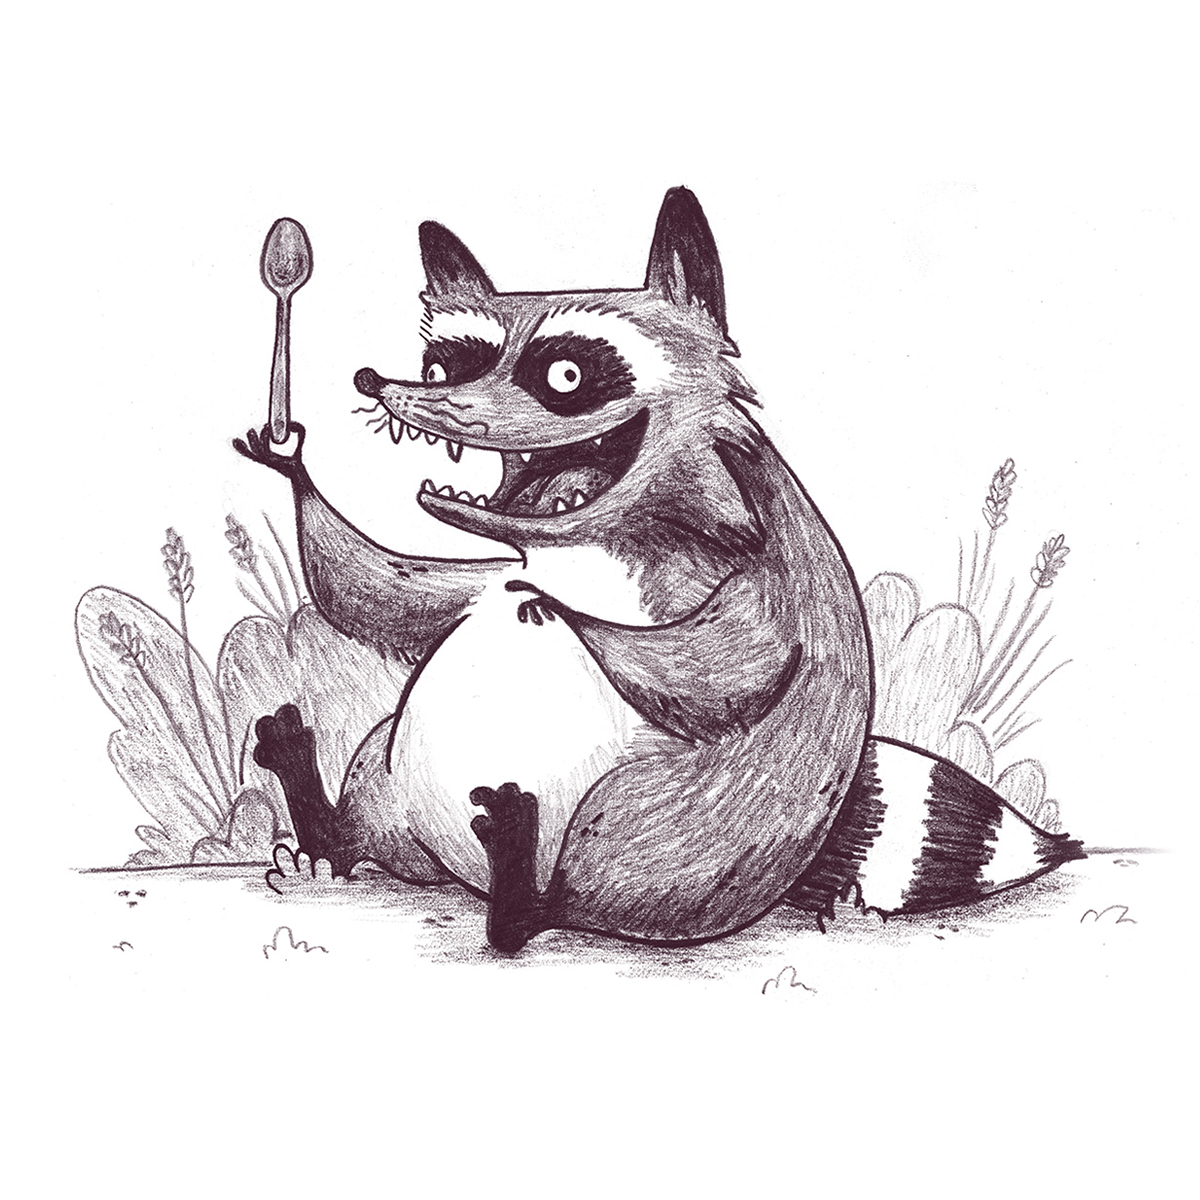 raccoon with spoon character design children's book illustration champaign Illinois midwest